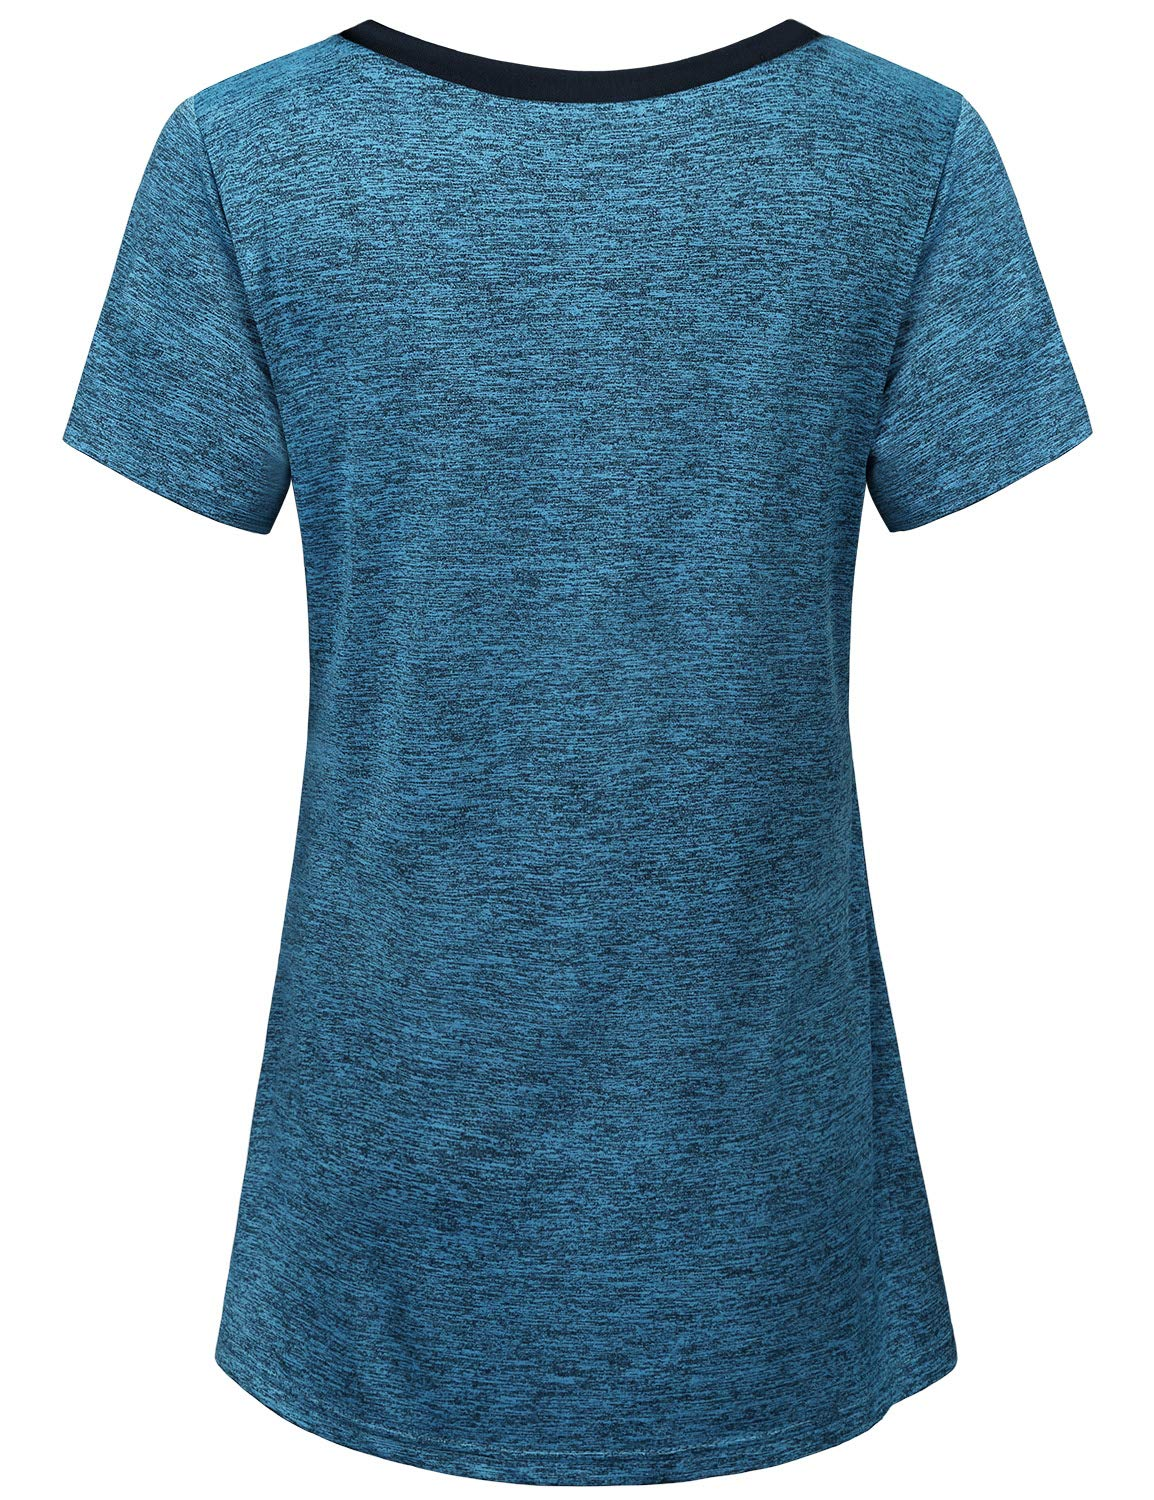 Miusey Tops for Women, Juniors Yoga Tops Sport Appreal Crew Neck Flowy Curved Hem Loose Fit Flattering Exercise Training Thin Large Cute T Shirts Blue L by Miusey (Image #2)